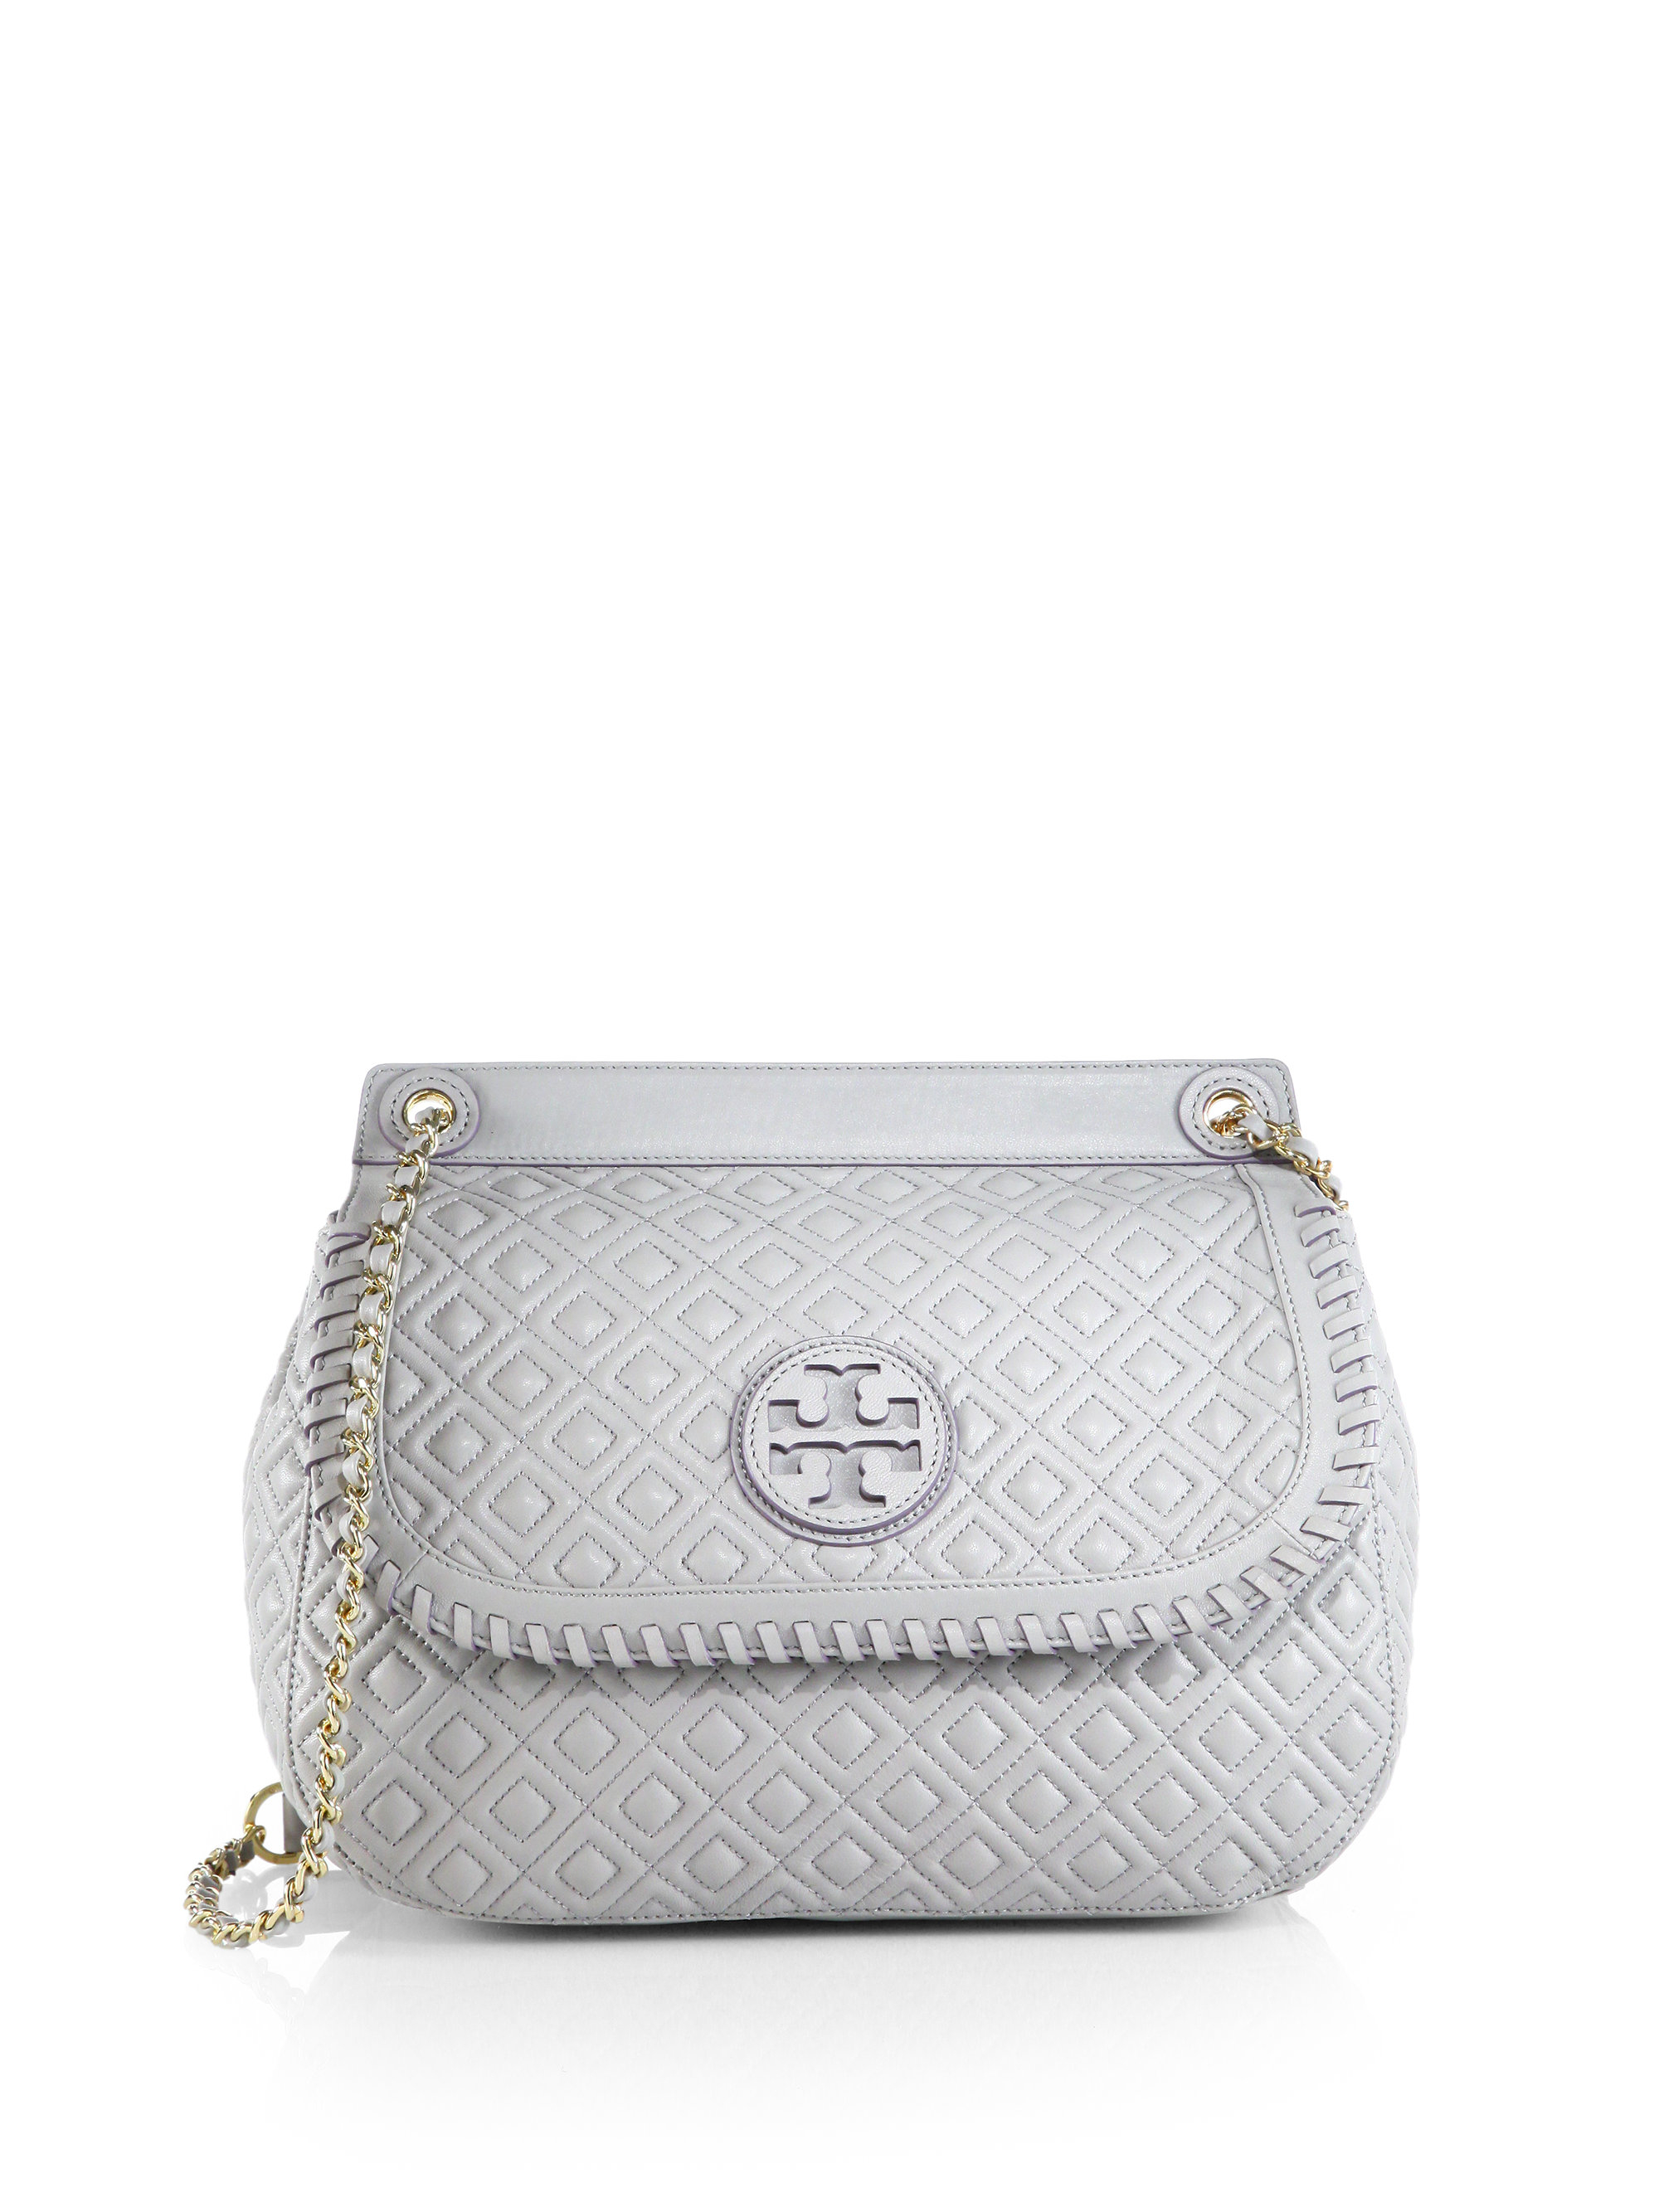 Tory Burch Marion Quilted Saddle Shoulder Bag In Metallic